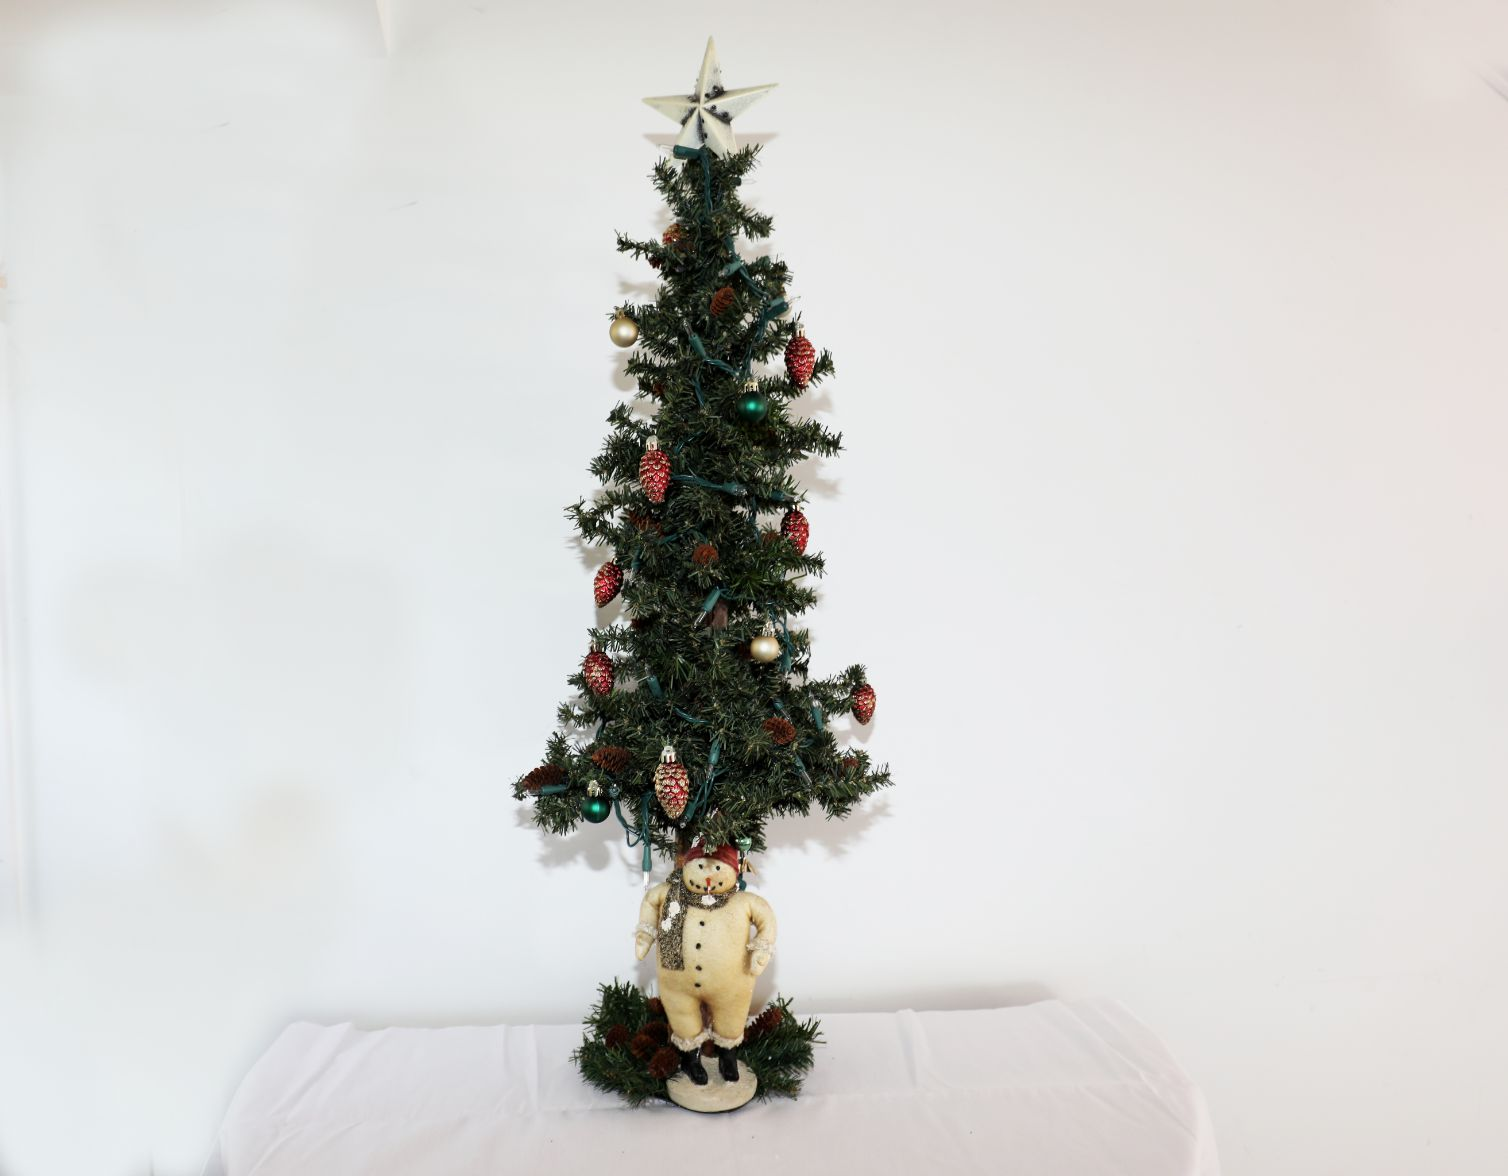 Tabletop Tree with Snowman, Tree is Plug Lighted | 39 inches